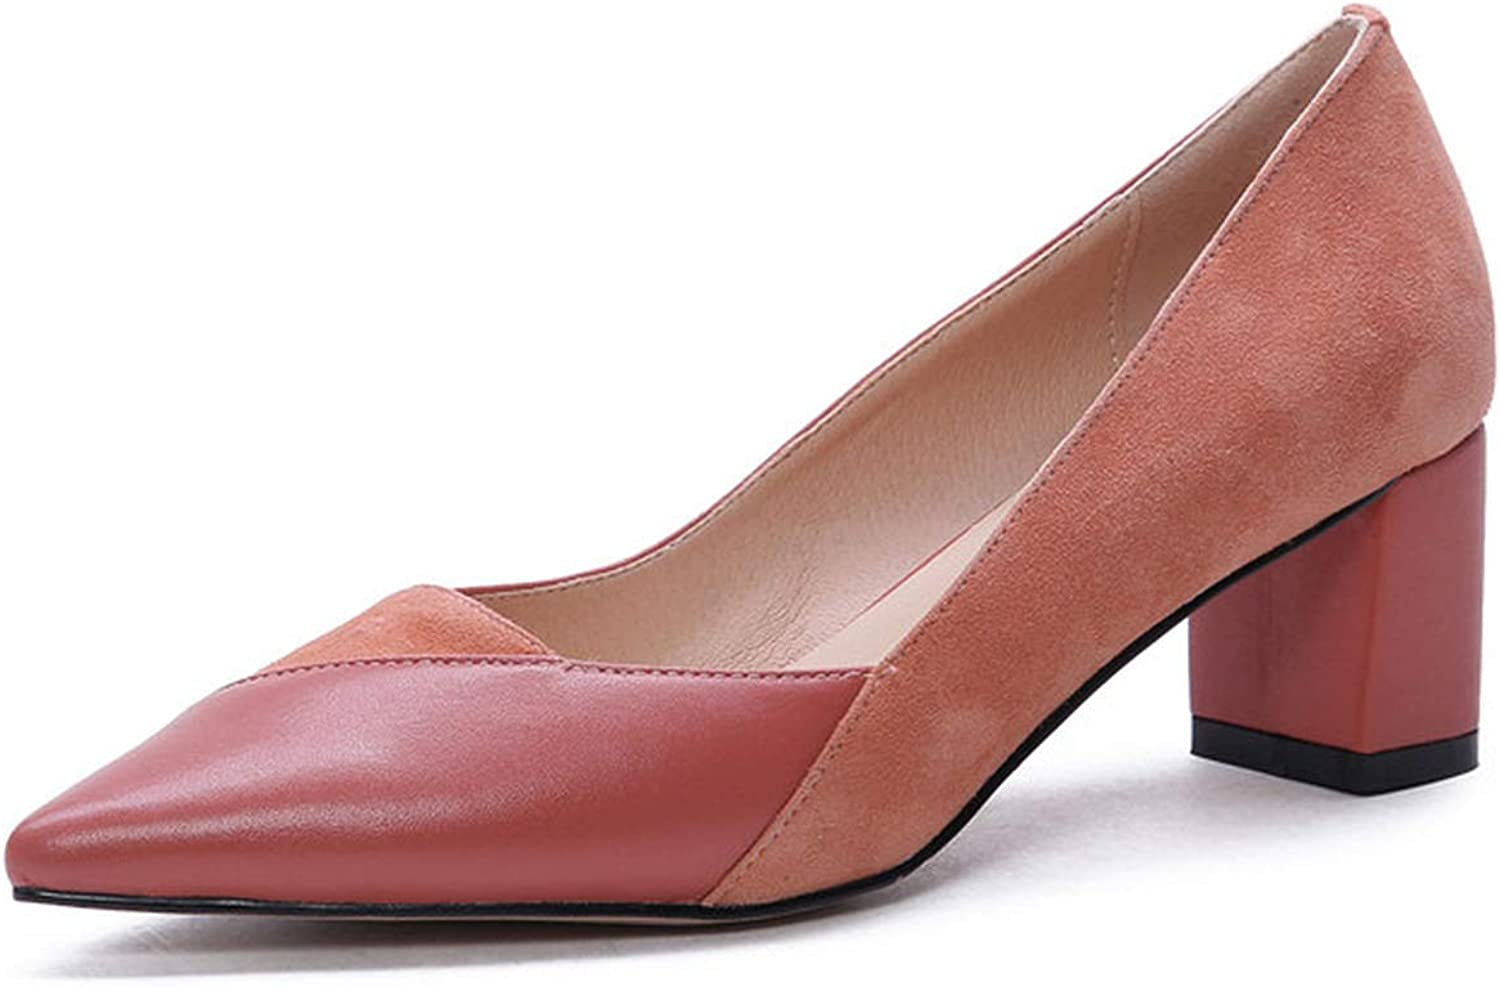 Longbao Cow Leather s for Woman Arrival Square High Heels Concise s Basic Woman